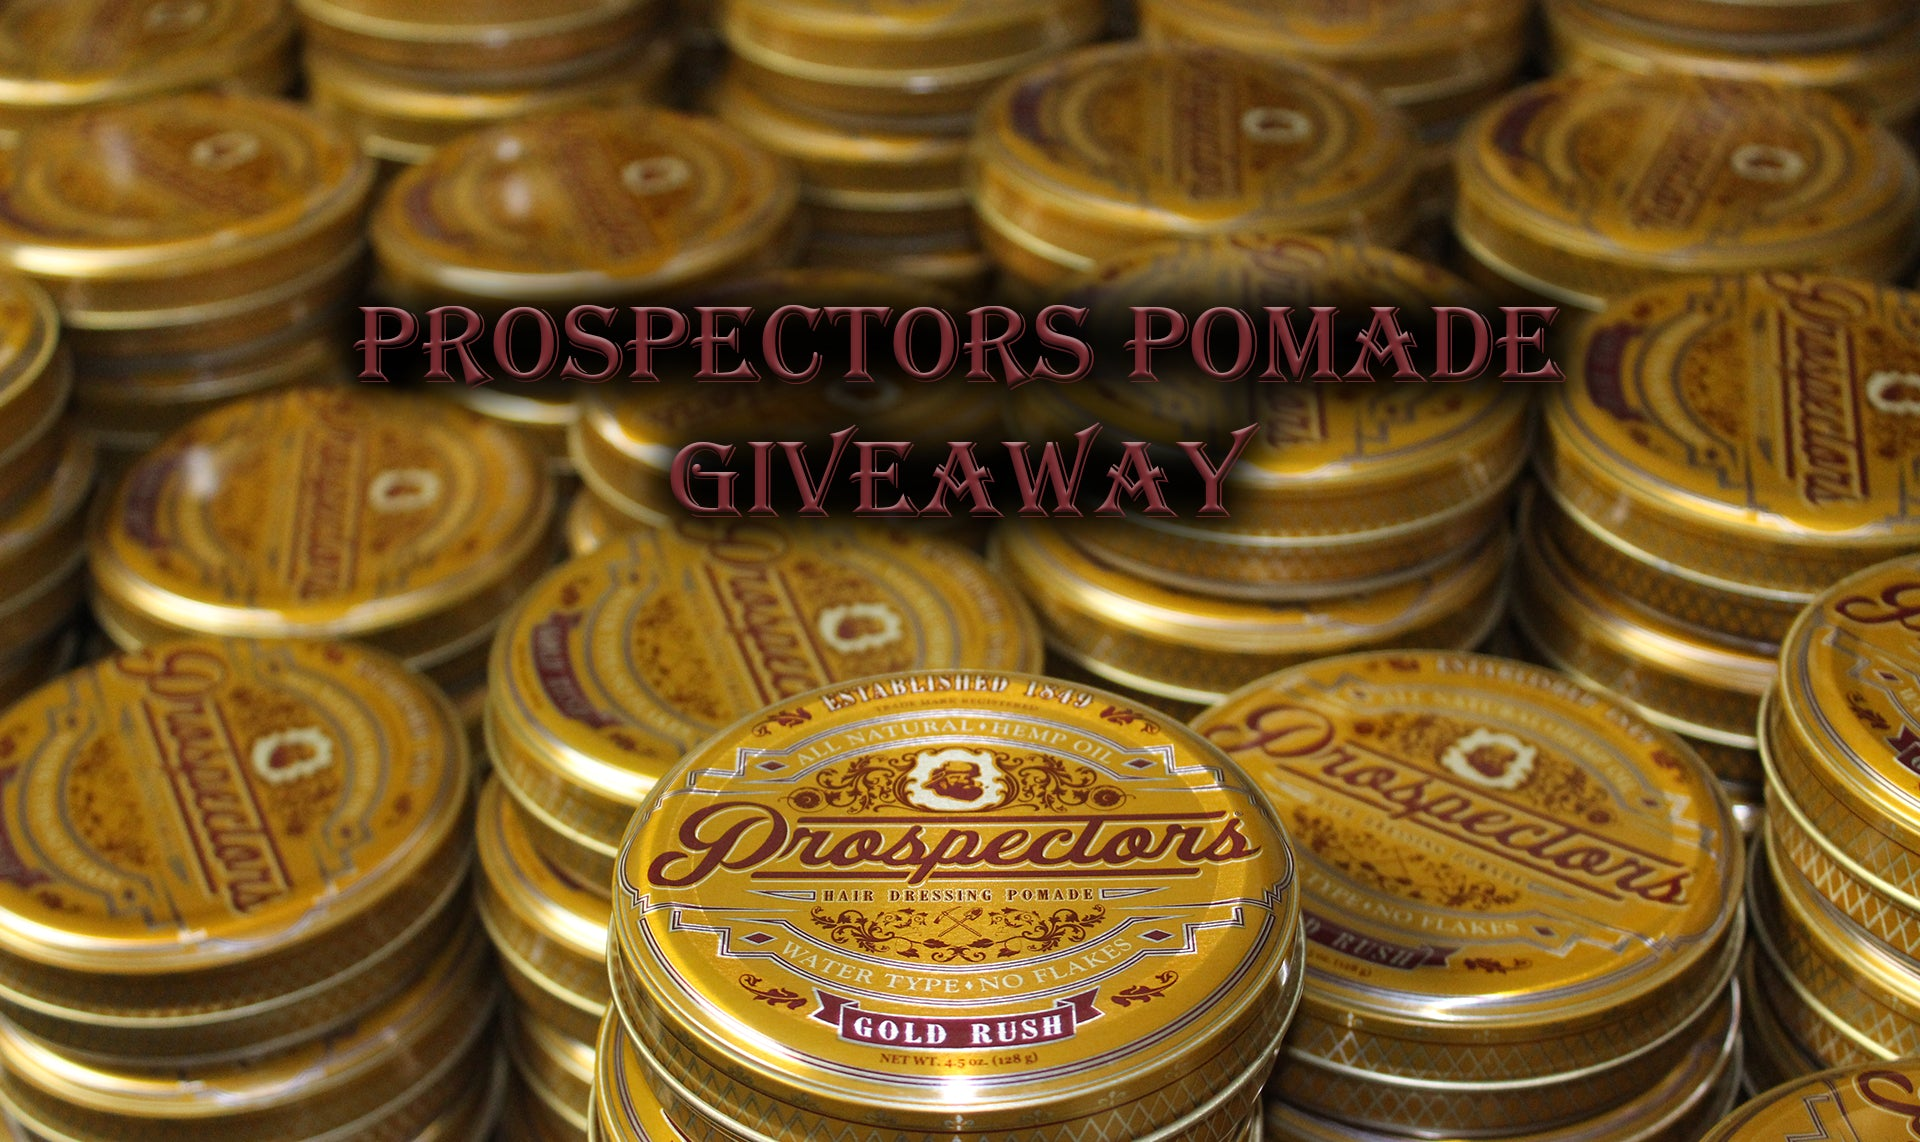 Prospectors Pomade Gold Rush Giveaway